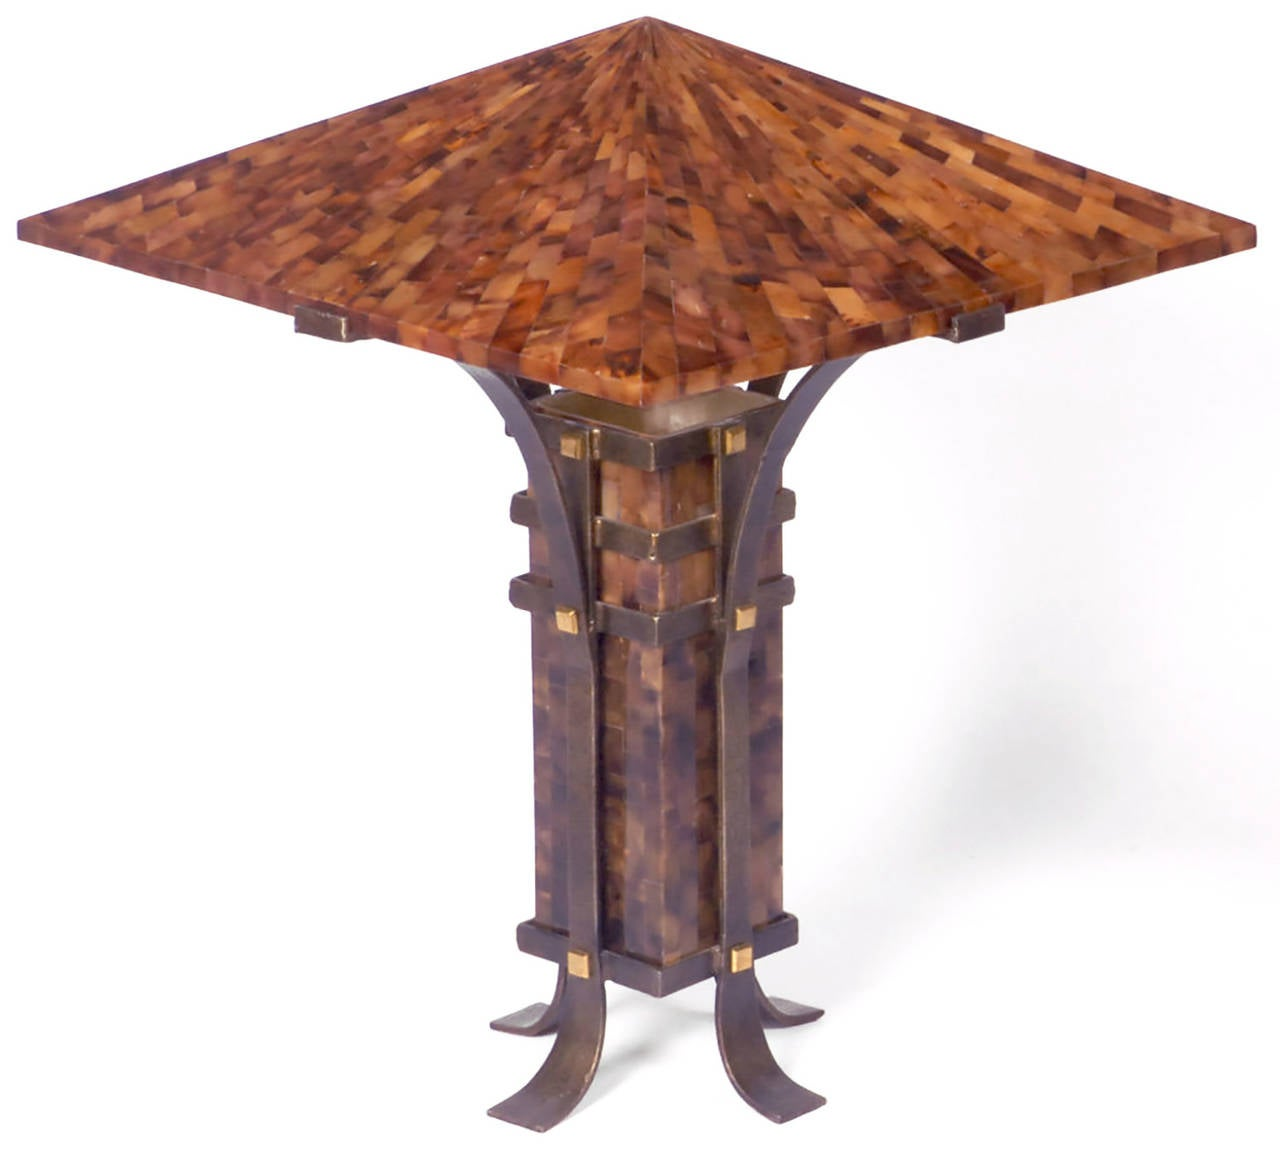 Constructed of tessellated Horn over translucent reinforced resin, cradled in hand-wrought iron bases, ornamented with square brass studs. Single socket illumination from body reflecting upward. Made by Maitland-Smith.